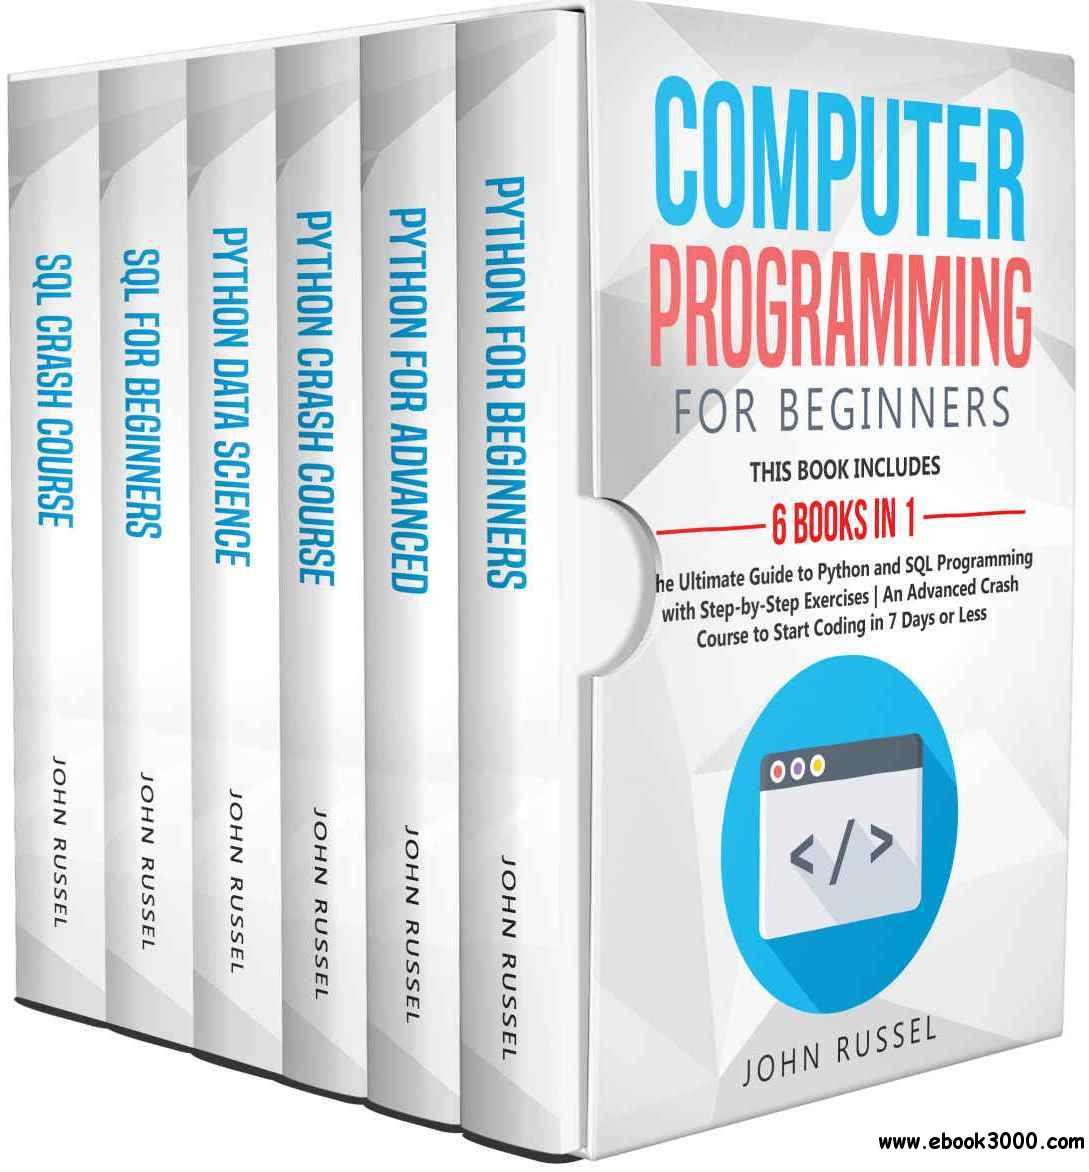 Computer Programming For Beginners 6 Books In 1